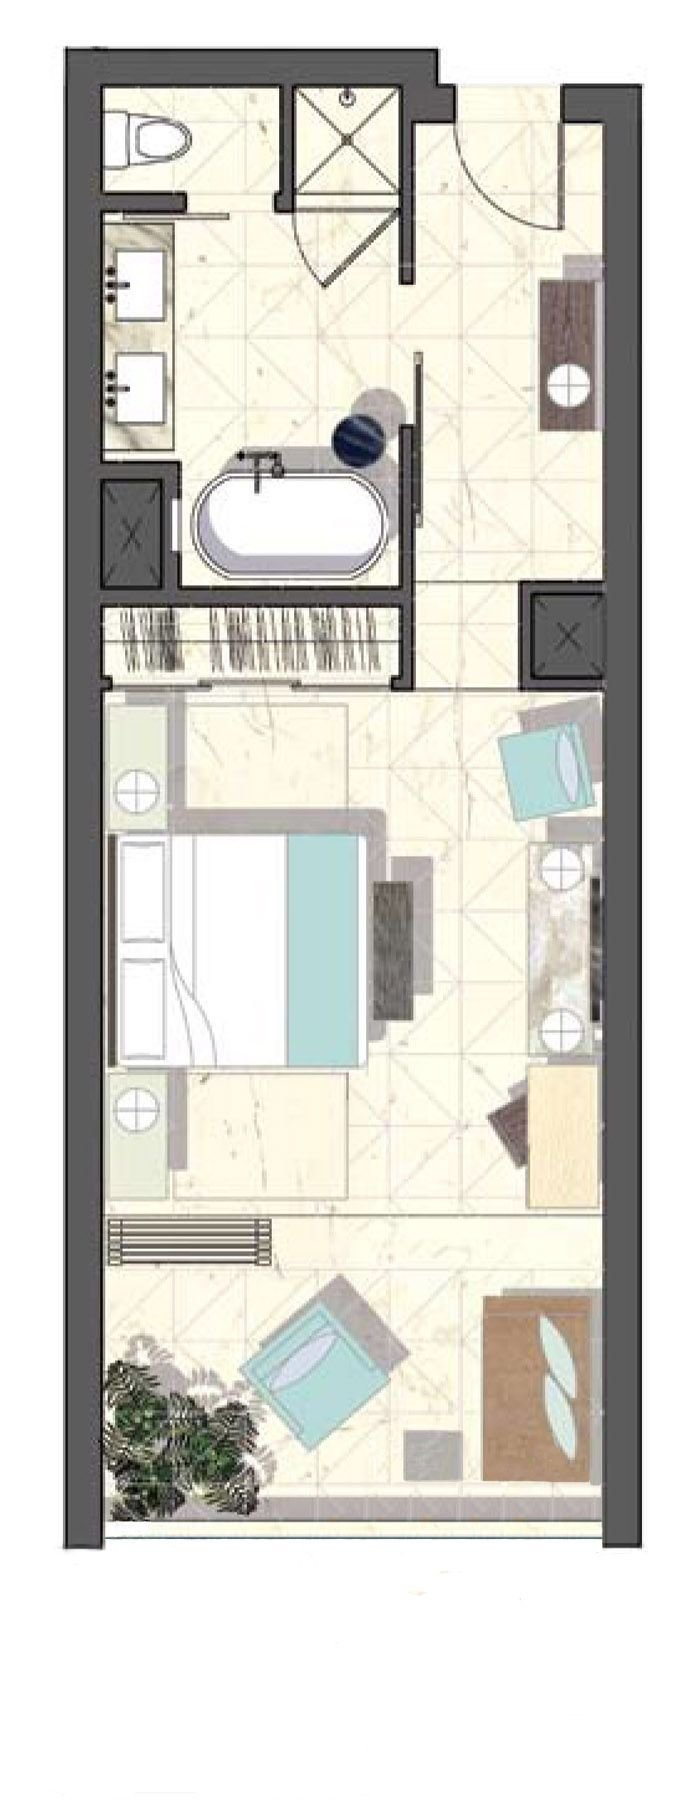 Best Viceroy Hotel Layout Good Design For A Room With A With Pictures